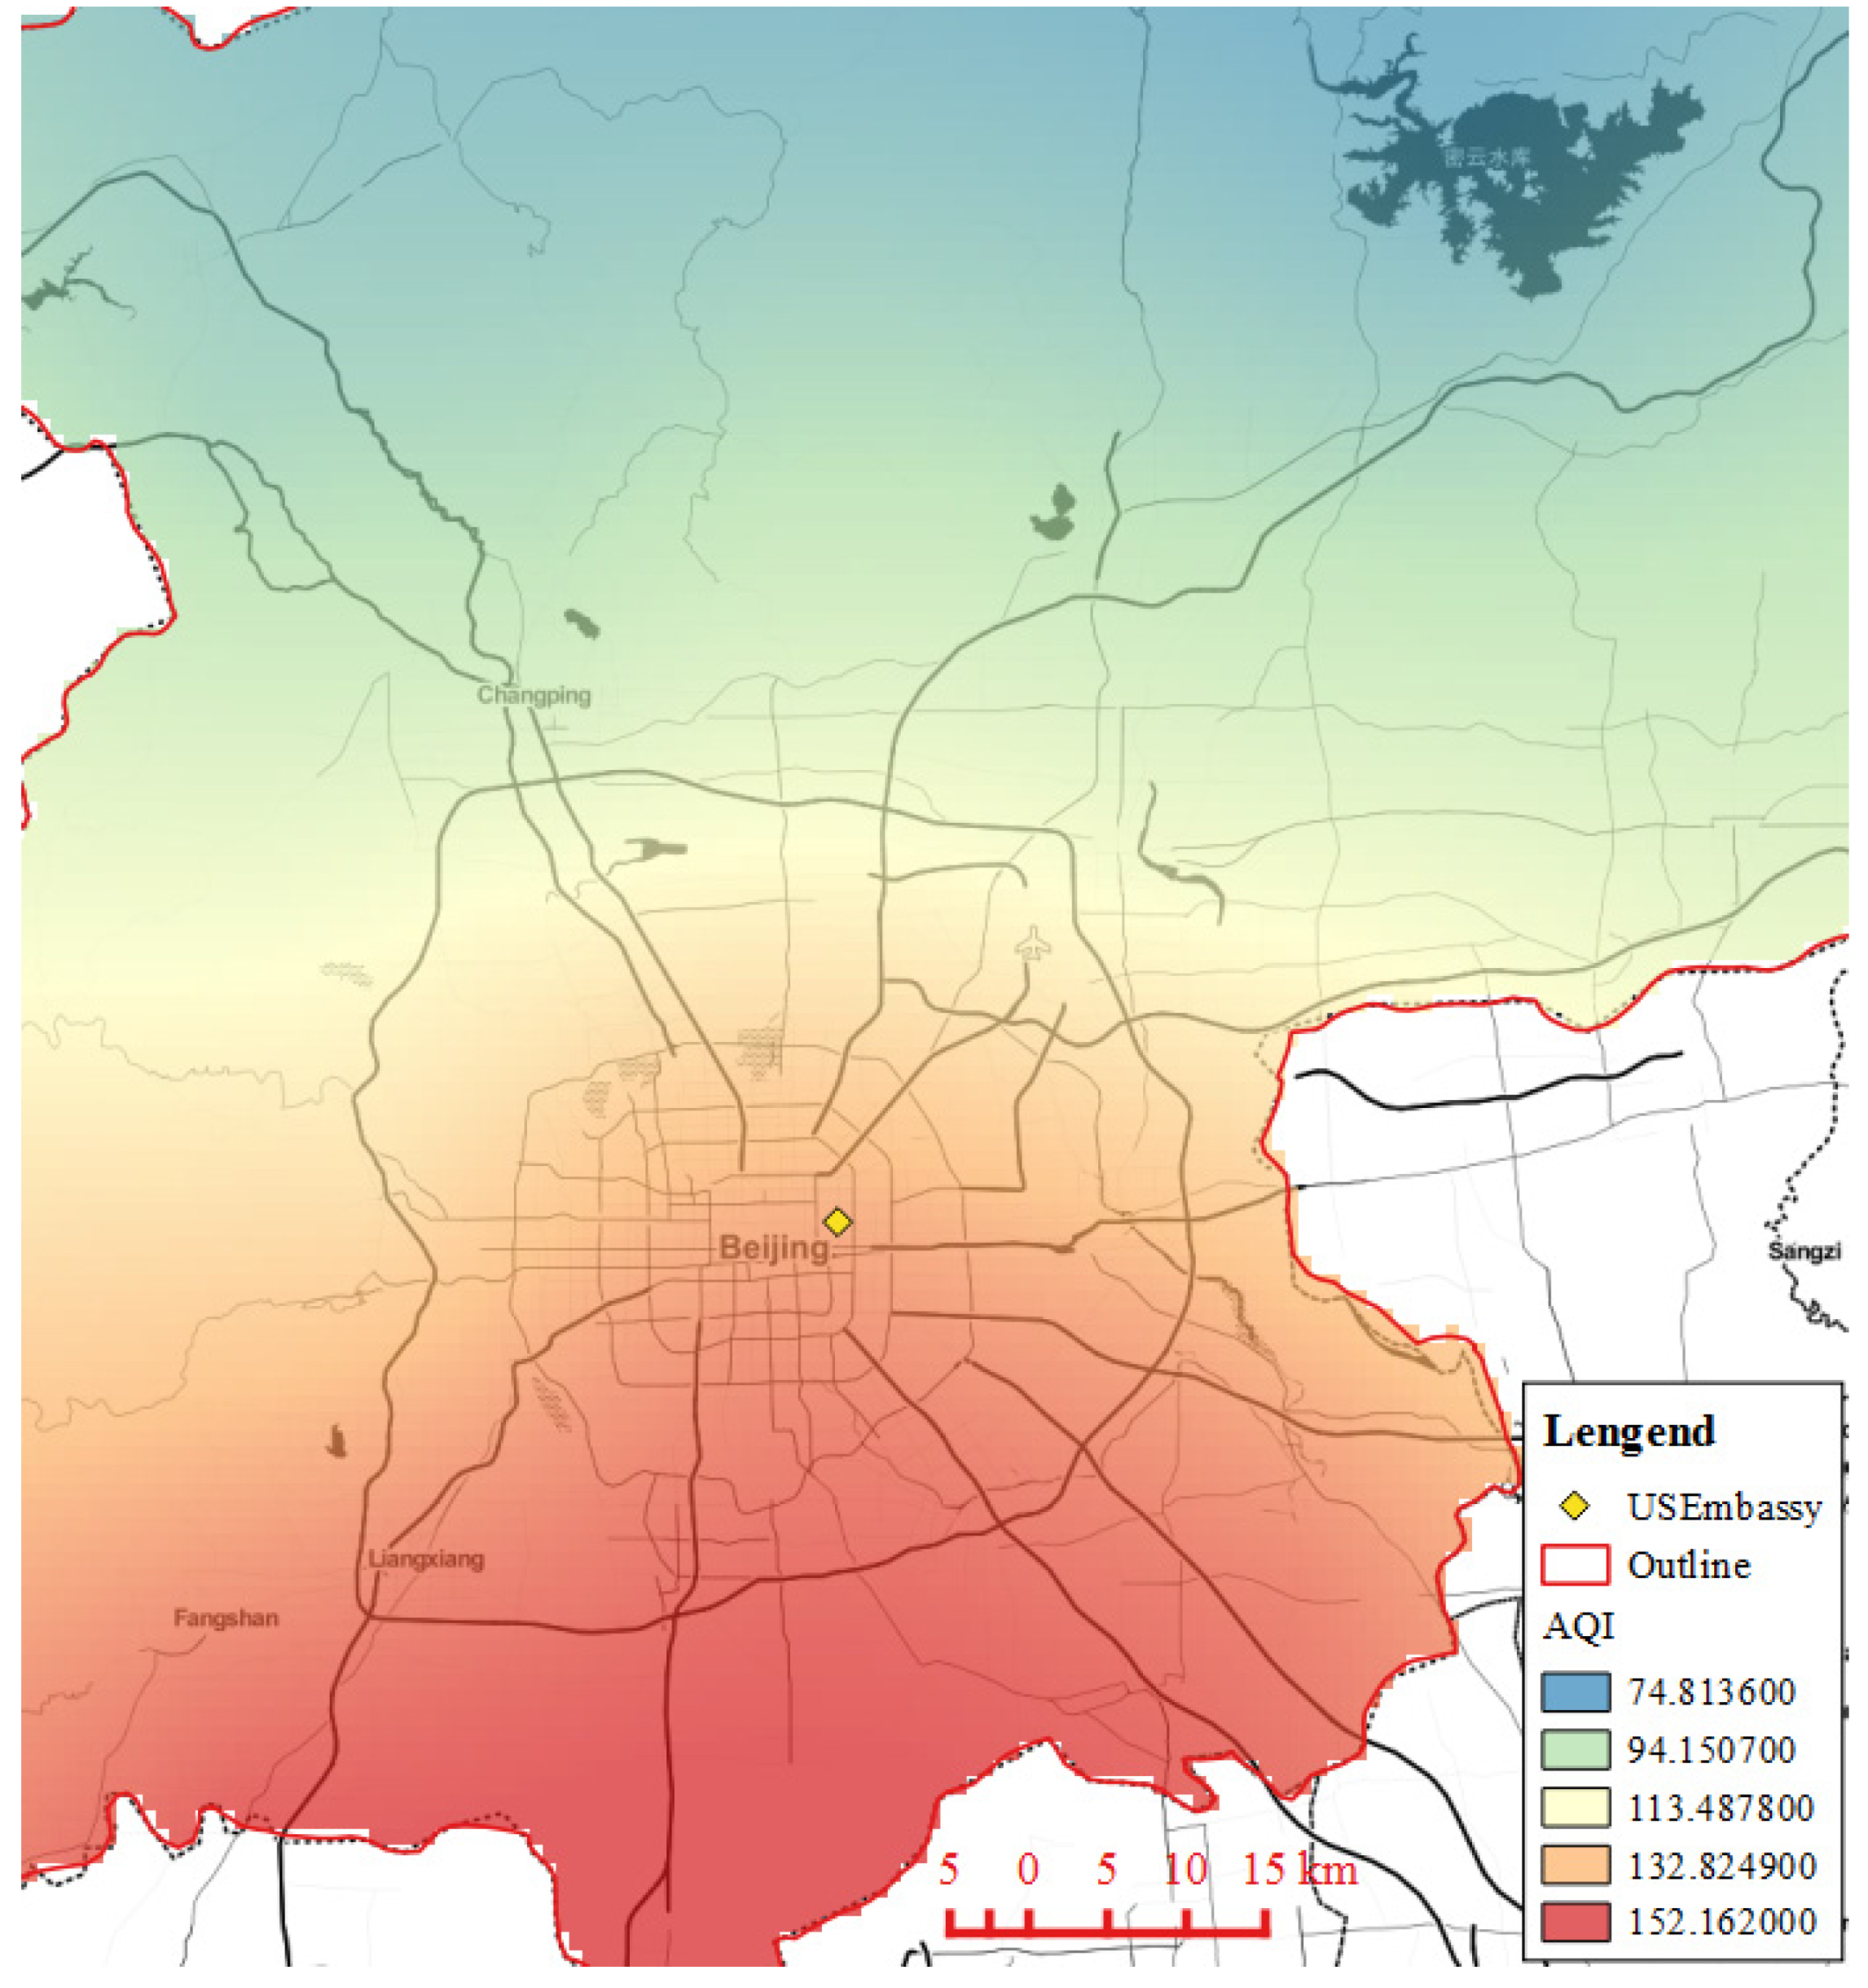 Atmosphere Free Full Text A Visualization Approach To Air Pollution Data Exploration A Case Study Of Air Quality Index Pm2 5 In Beijing China Html